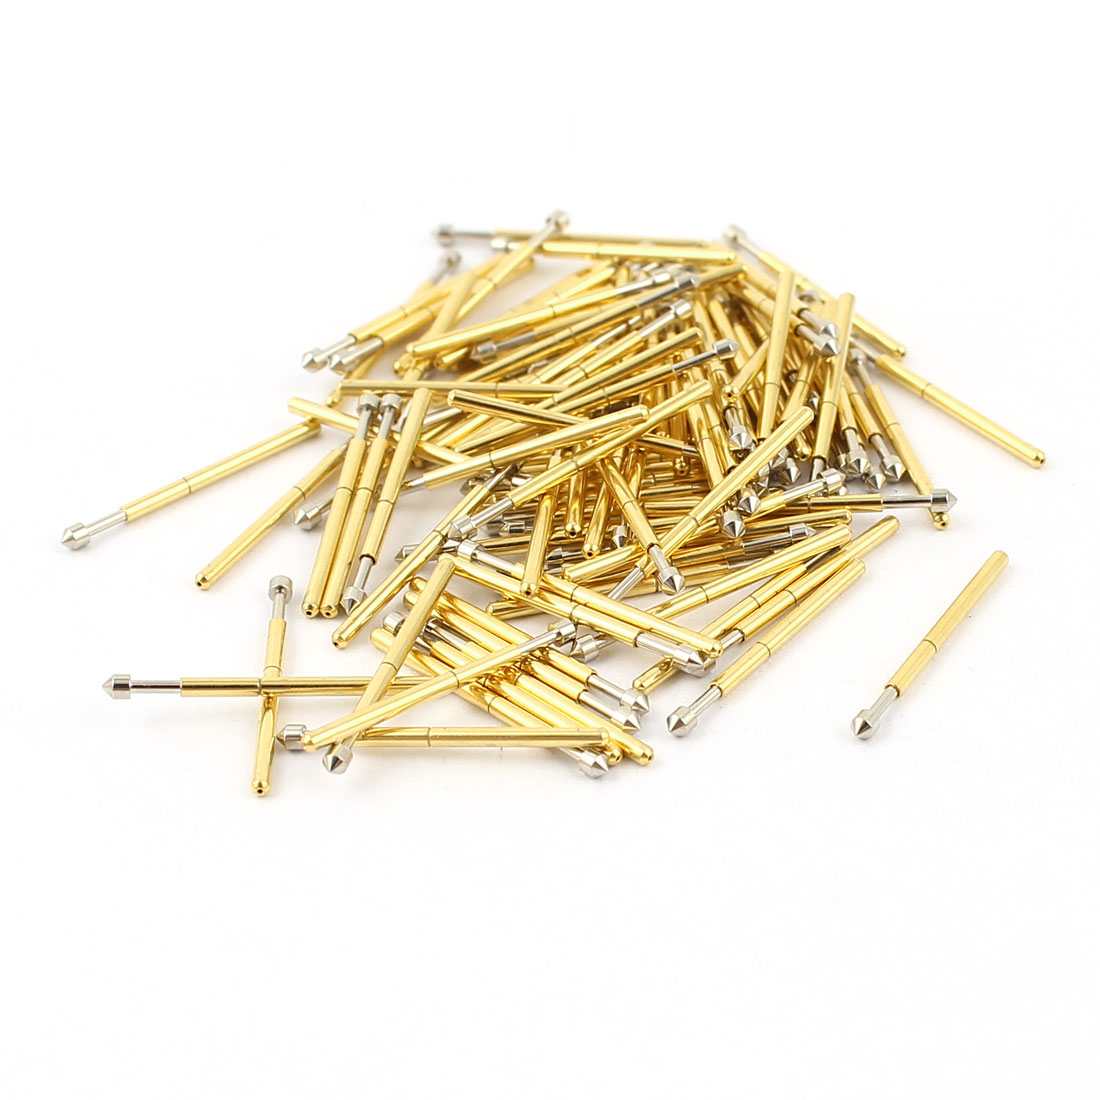 100 Pcs P75-E2 1.3mm Convex Tip Spring Testing Probes Pin 16.5mm Length